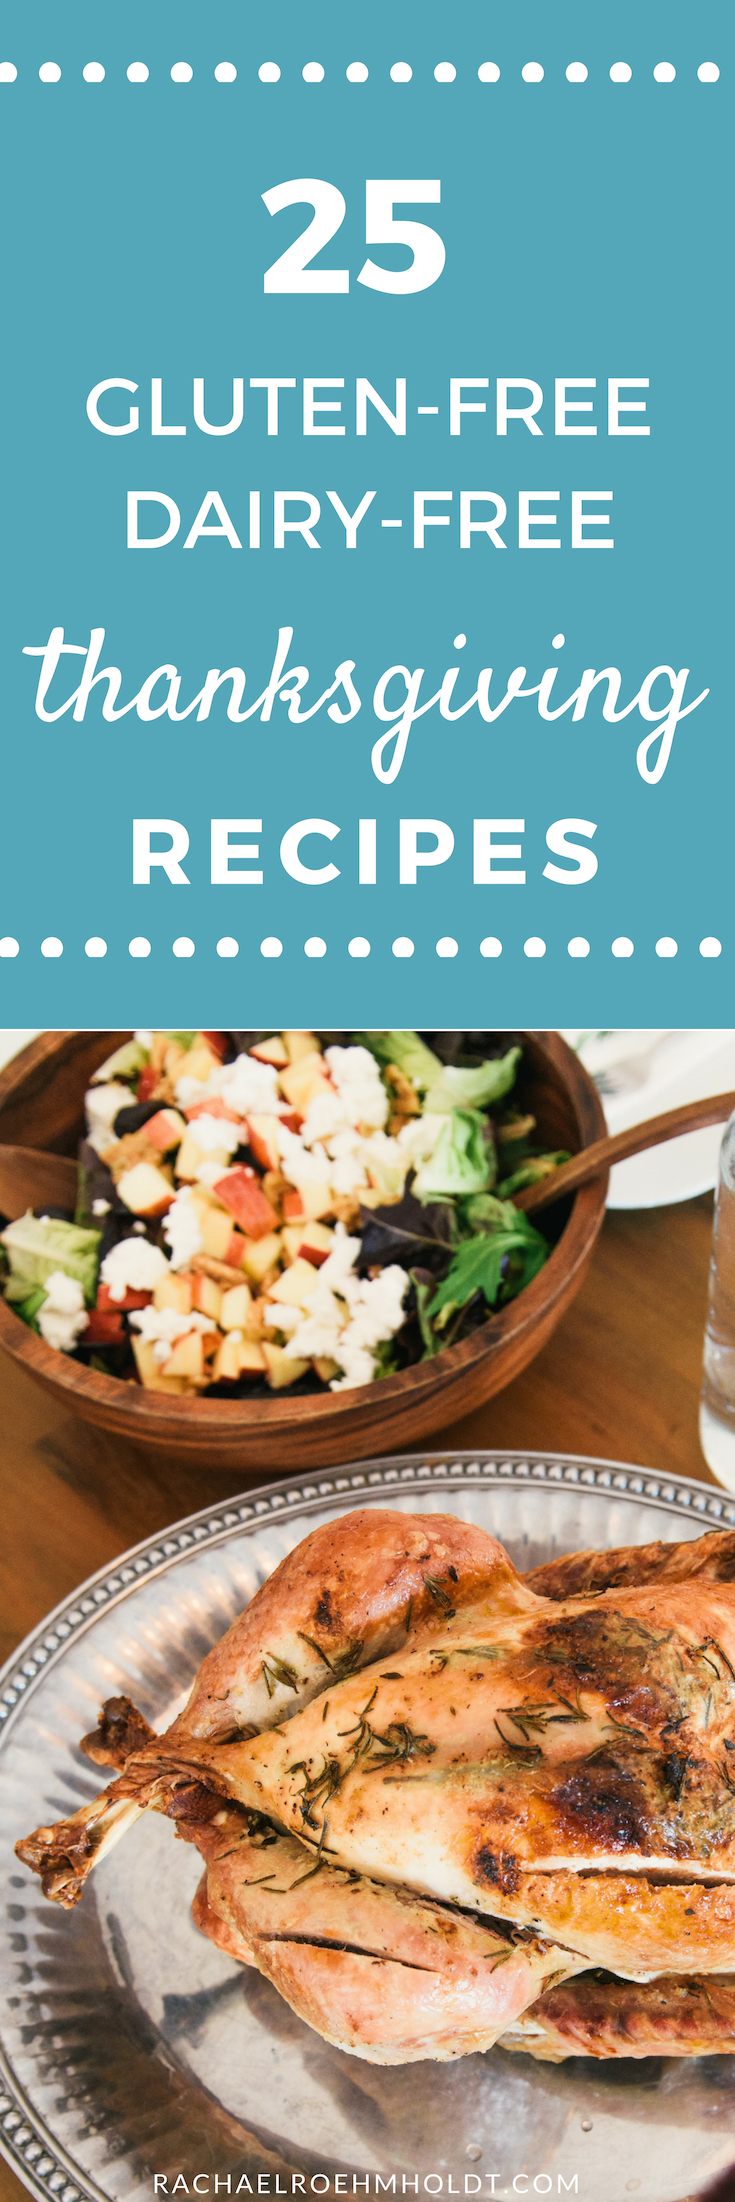 Looking for some gluten-free dairy-free Thanksgiving recipe inspiration? Look no further! Check out these 25 recipes, including breakfast, appetizers, main courses, side dishes, and desserts all to make sure you keep on track with your diet - and feel good the next day!